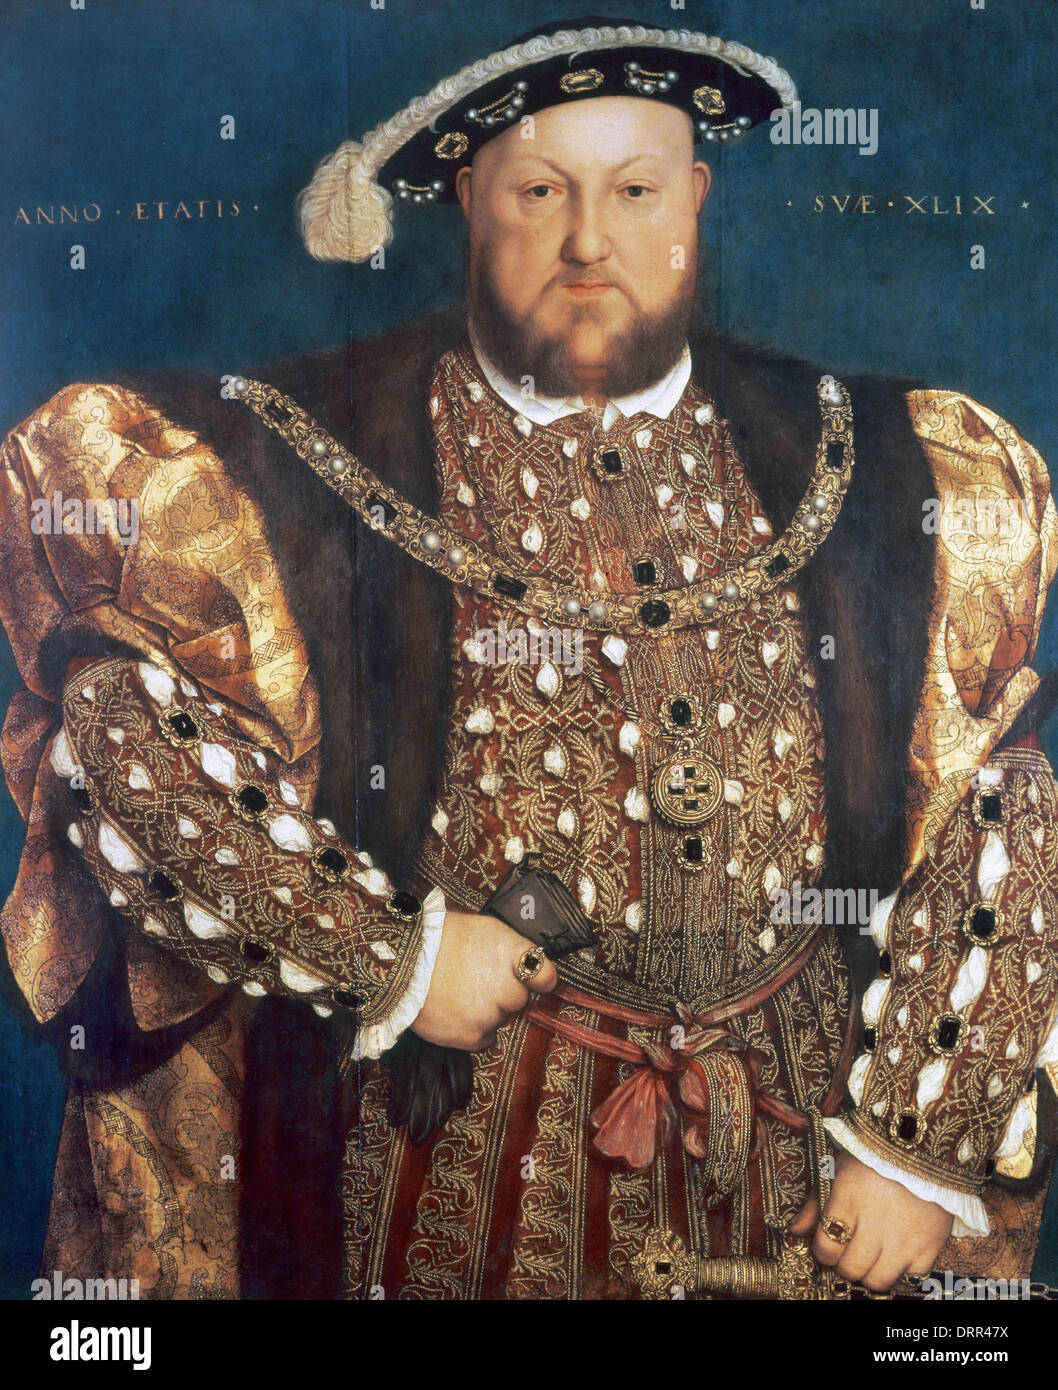 King of England from 1509-1547. Portrait by Hans Holbein the Younger  (1497-1543). Oil on panel, 1540.